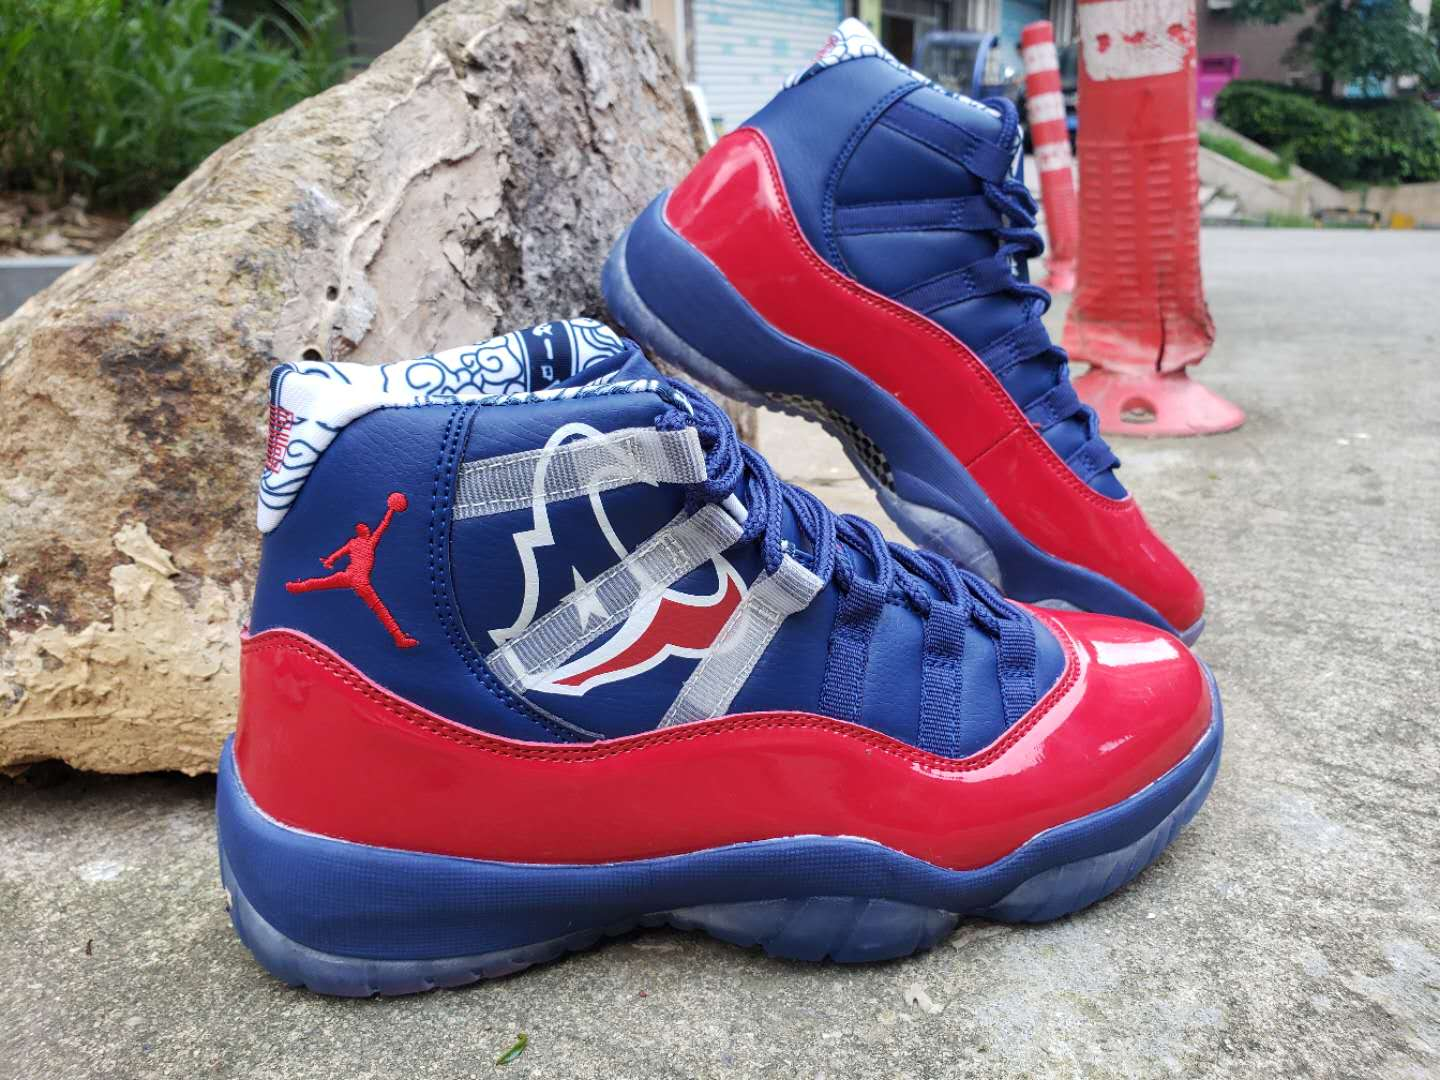 2019 Air Jordan Shoes 11 Champion Leather Blue Red Shoes